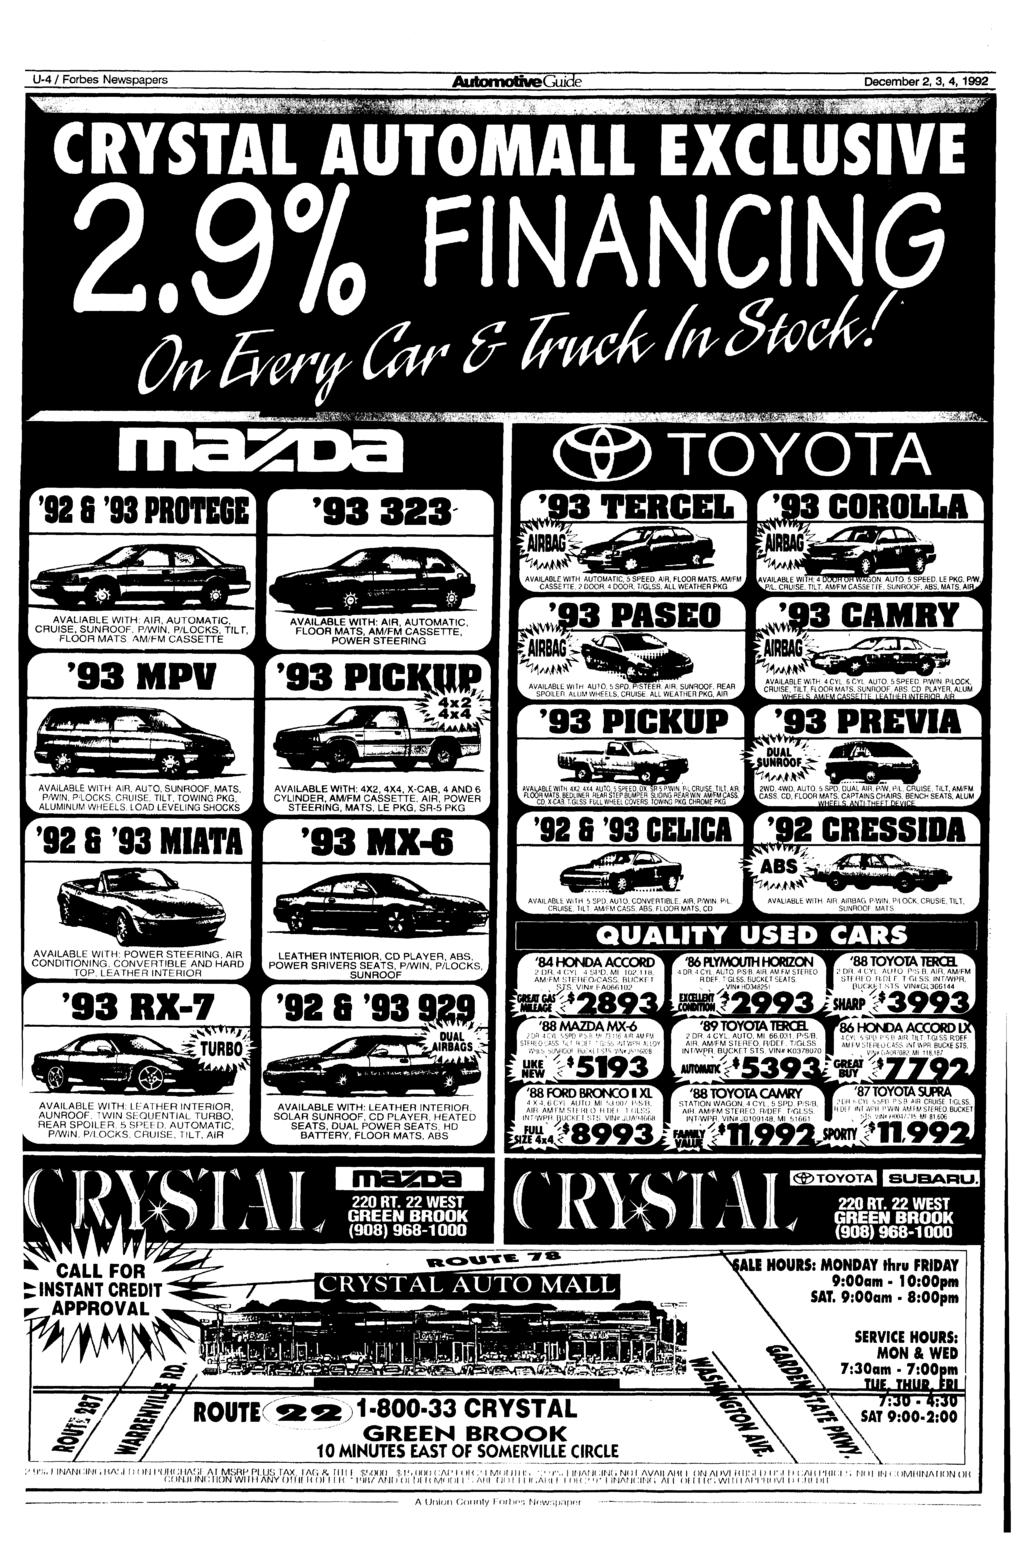 U-4 / Forbes Newspapers December 2, 3, 4,1992 '^^^i^dmimsim CRYSTAL AUTOMALL EXCLUSIVE I3 TERCEL mis JRBAG COROLLA AVALIABLE WITH: AIR, AUTOMATIC, CRUISE, SUNROOF, P/WIN, P/LOCKS, TILT, FLOOR MATS